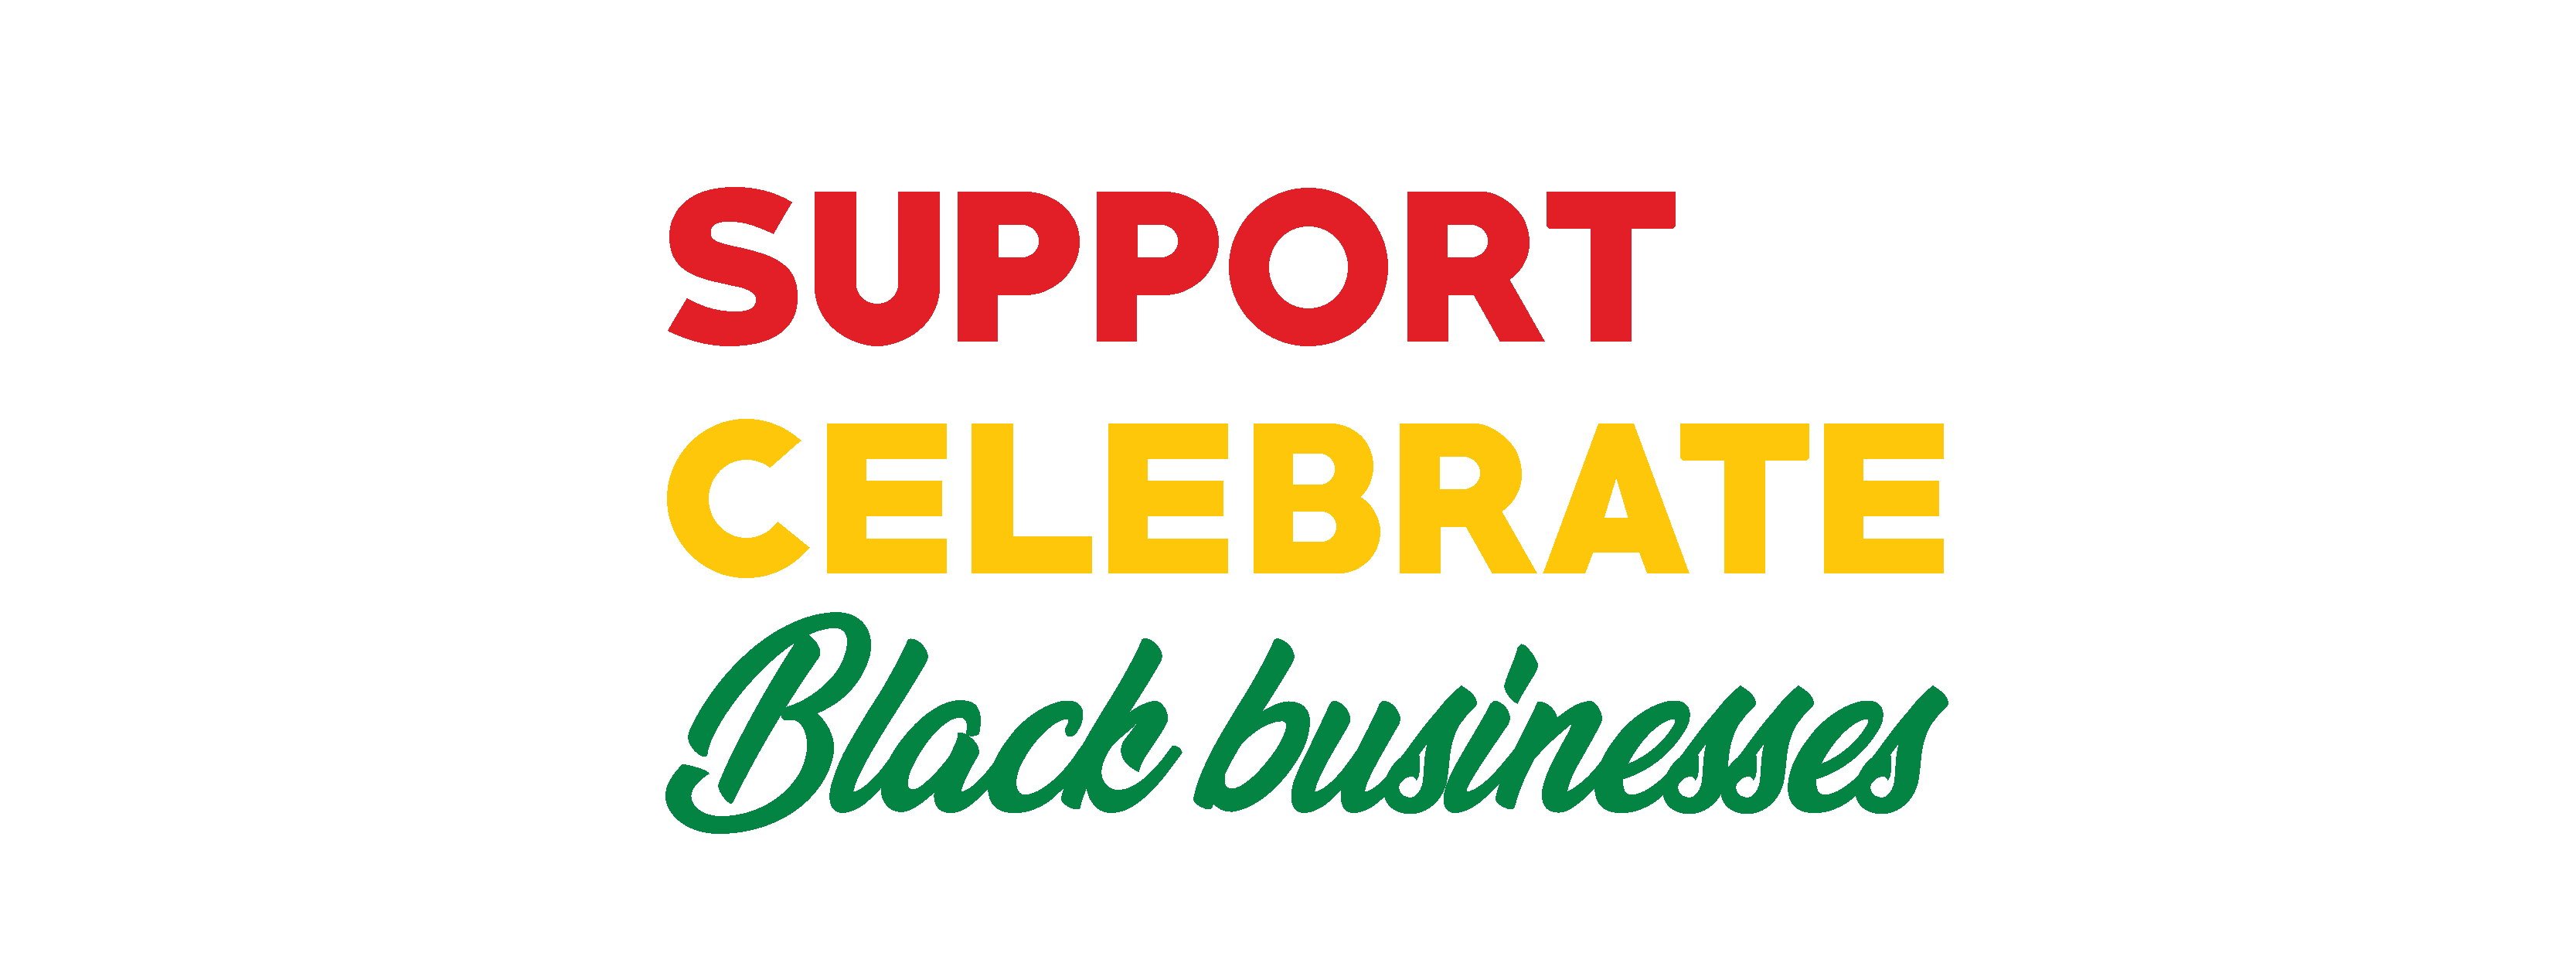 Support & Celebrate Black Businesses-text-2